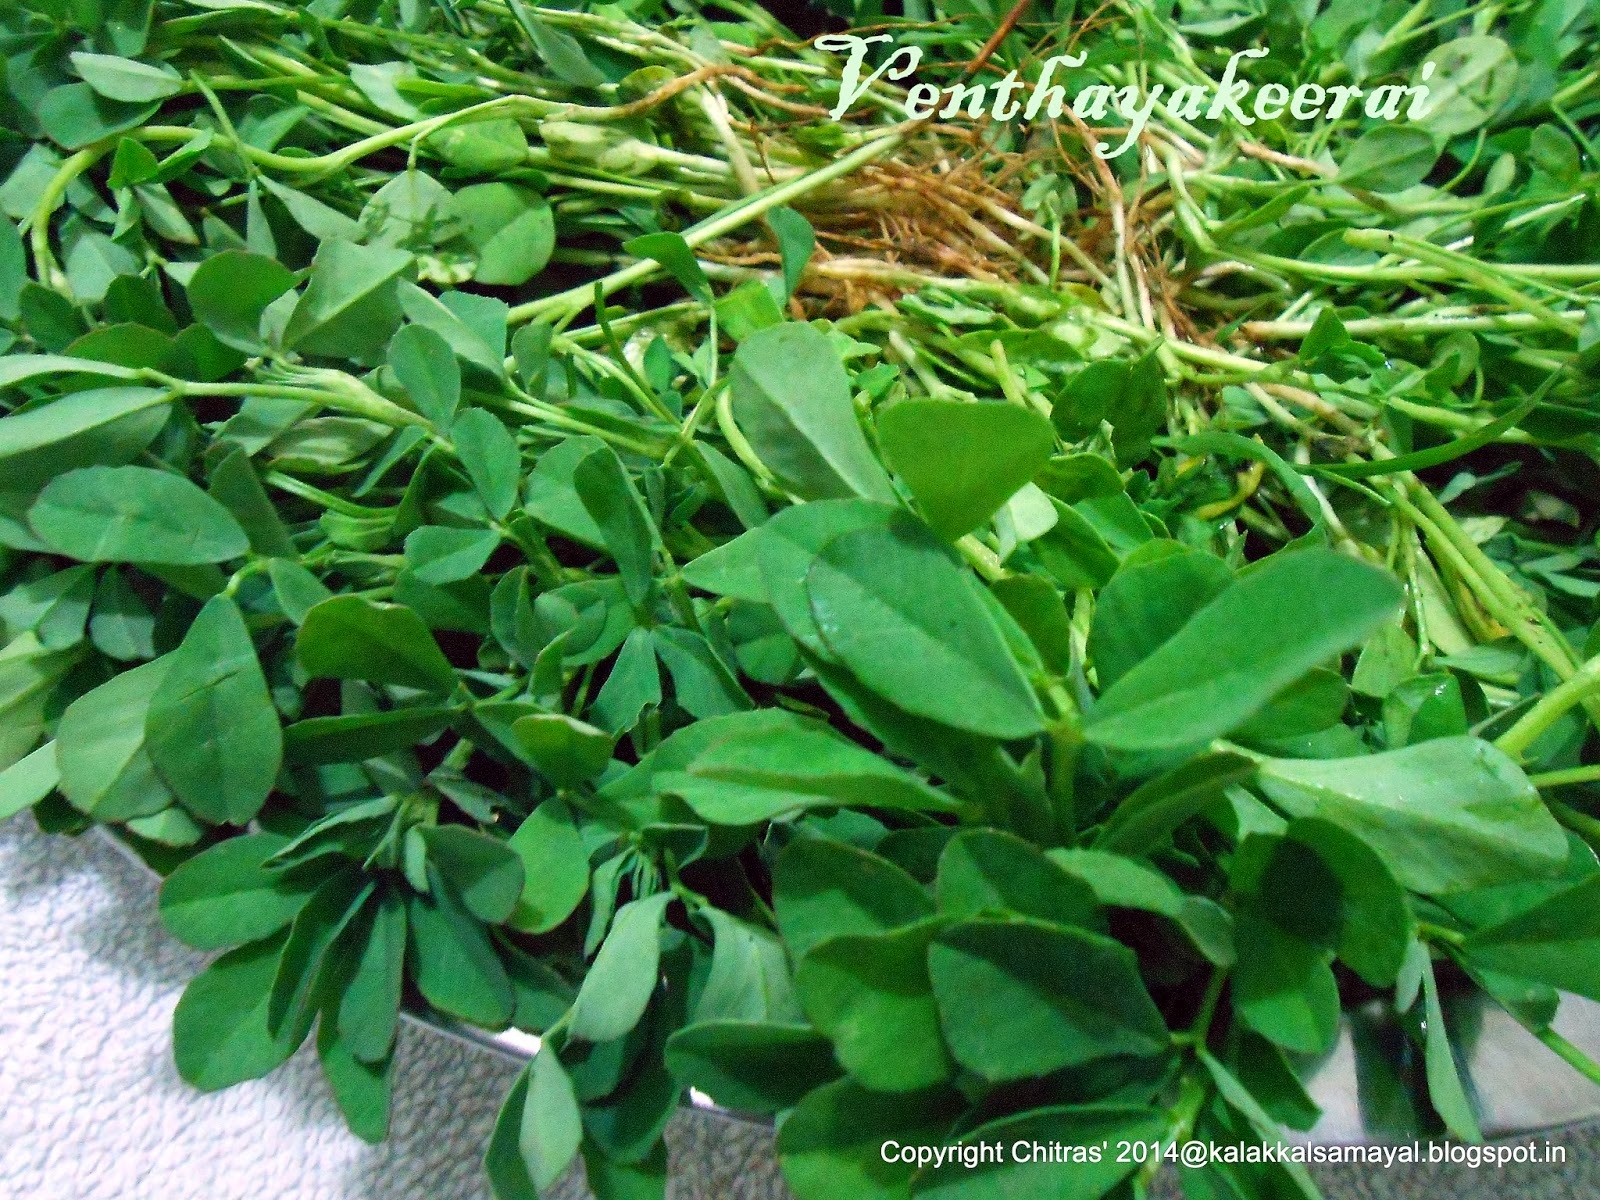 Venthaya keerai [ Fenugreek leaves ]